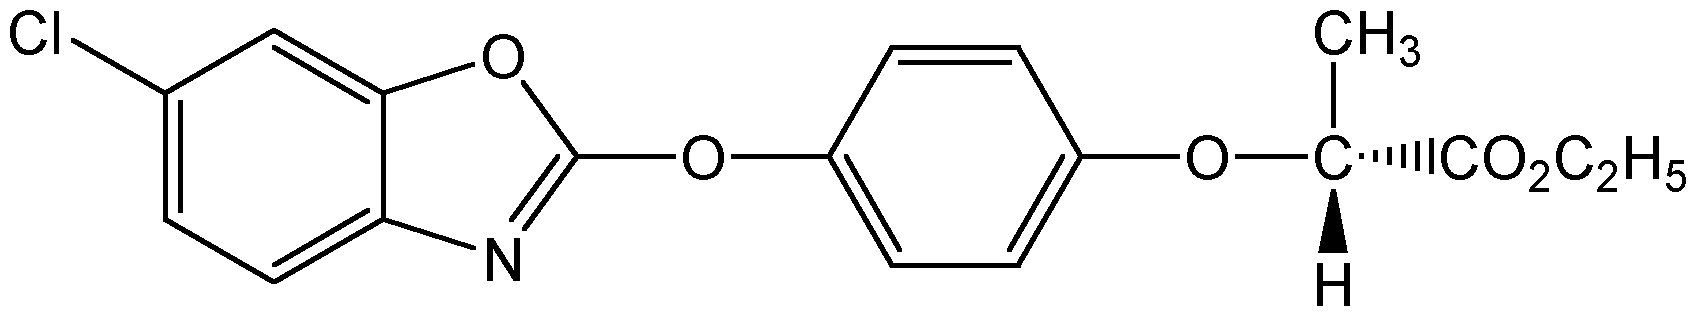 Chemical Structure for Fenoxaprop-P-ethyl